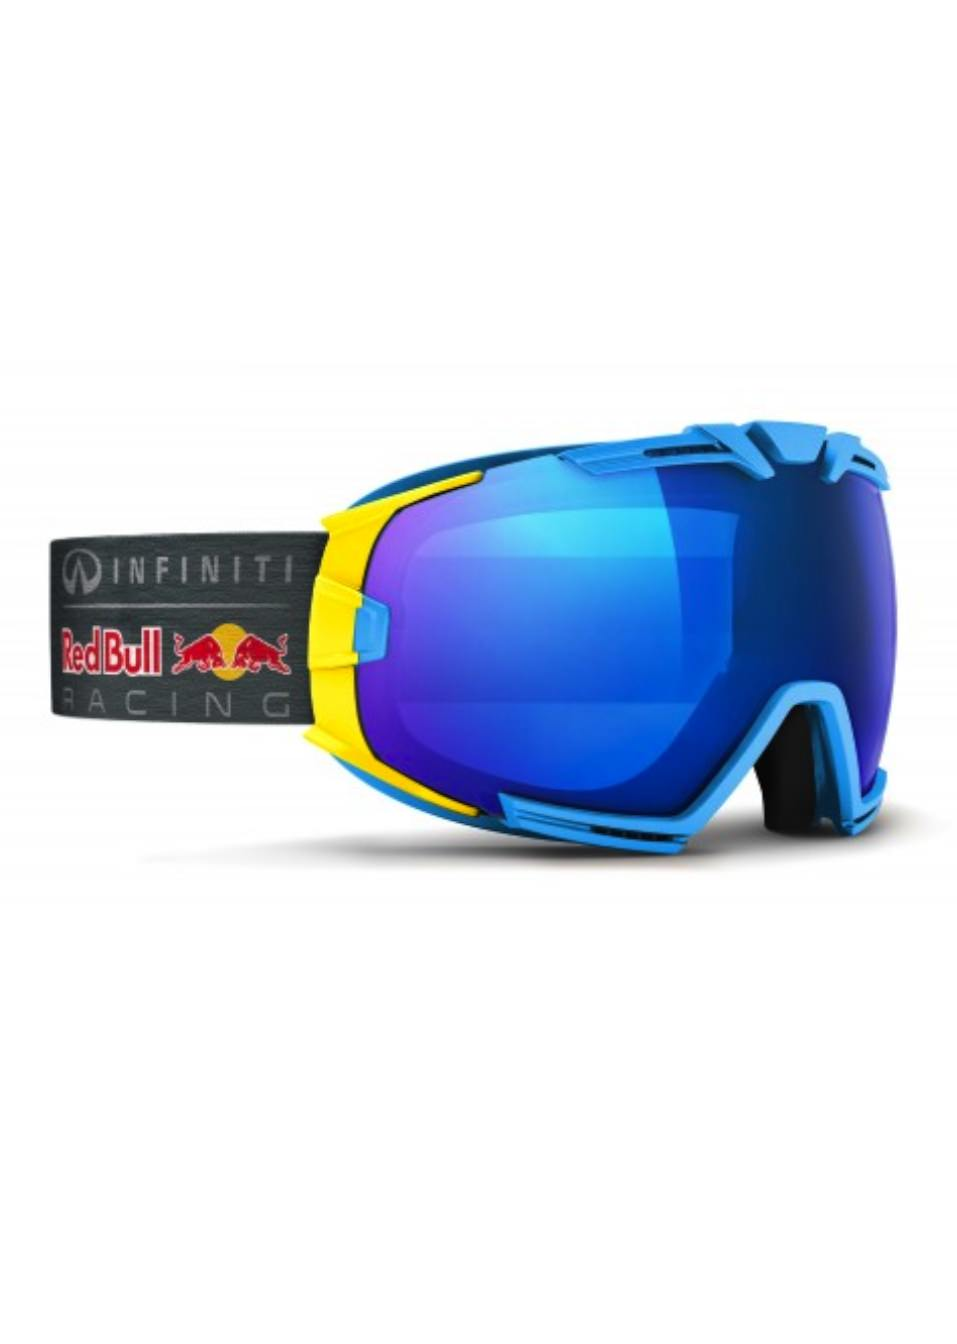 RED BULL RACING RASCASSE 023 - LM BOARD STORE